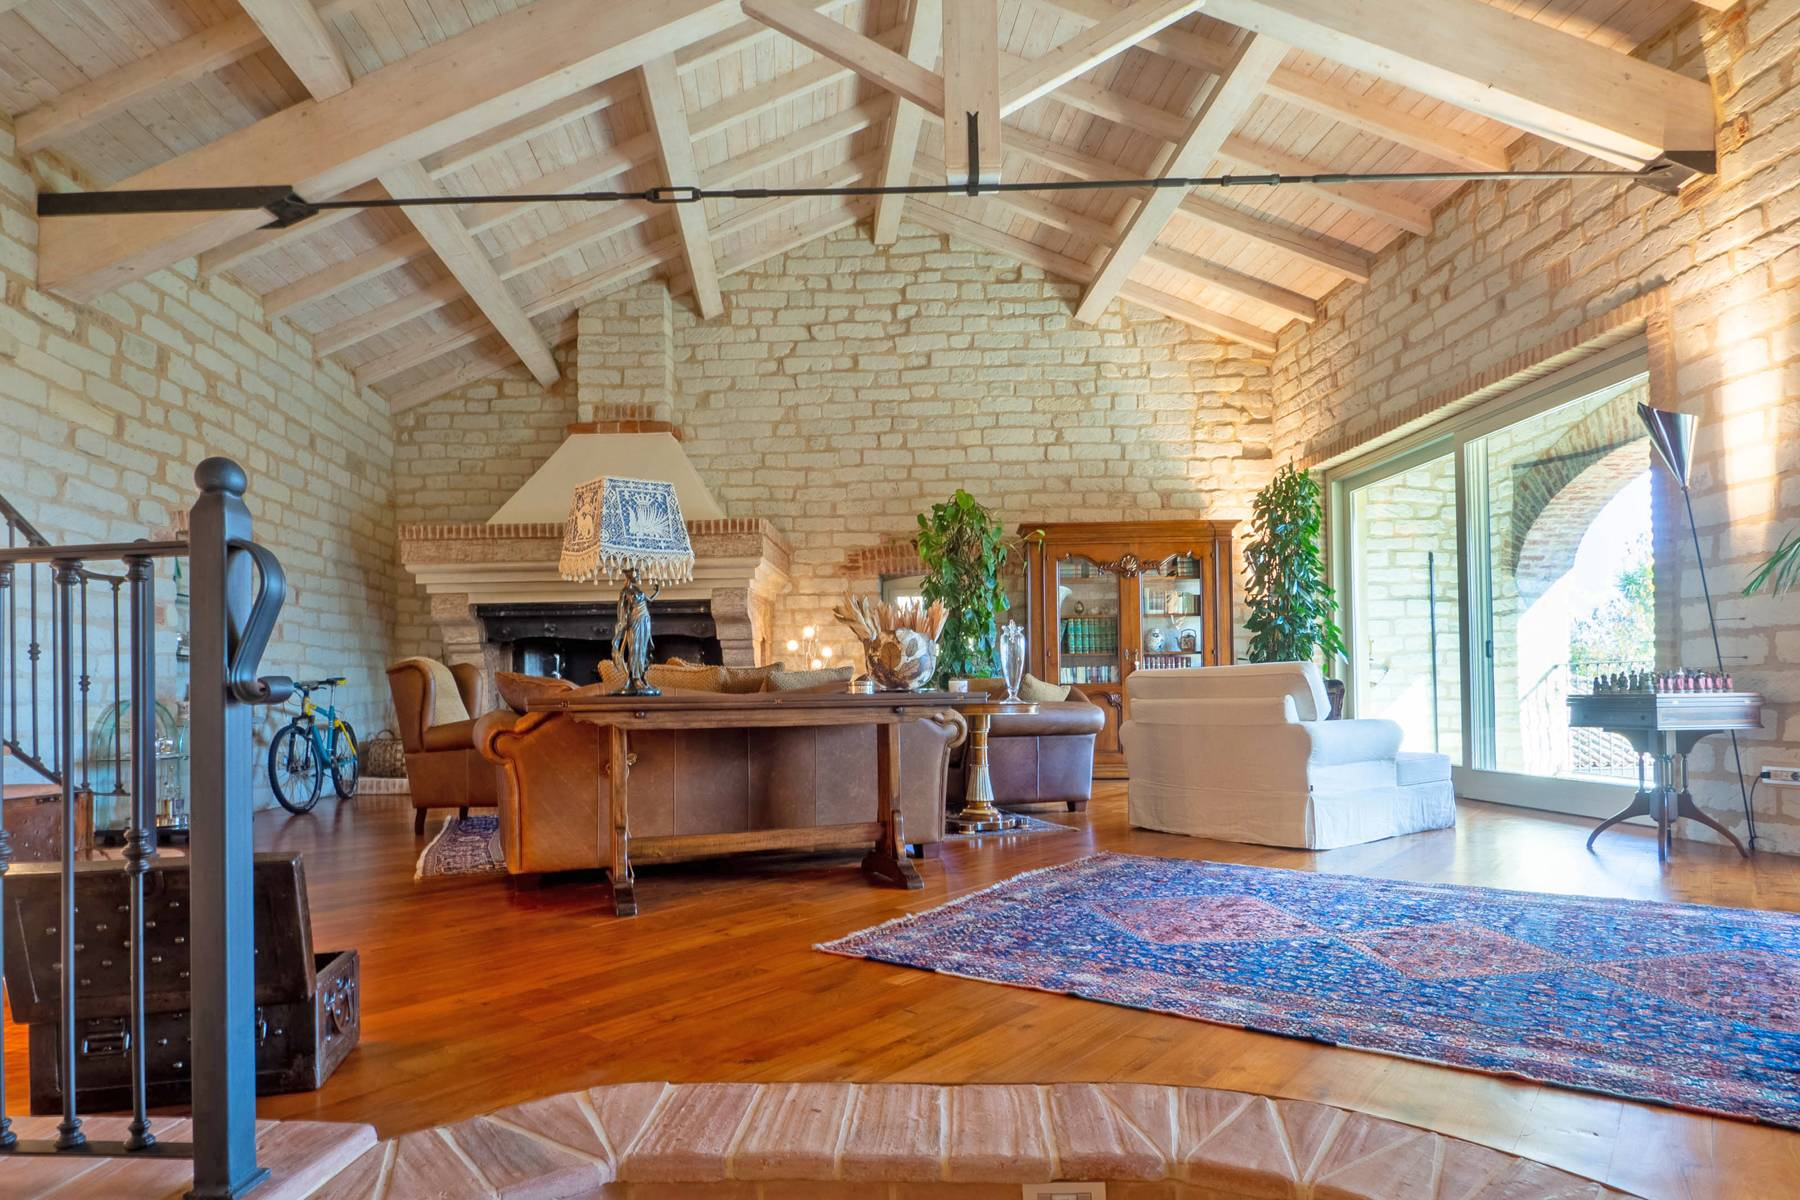 Refined farmhouse nestled in the hills of Monferrato - 24